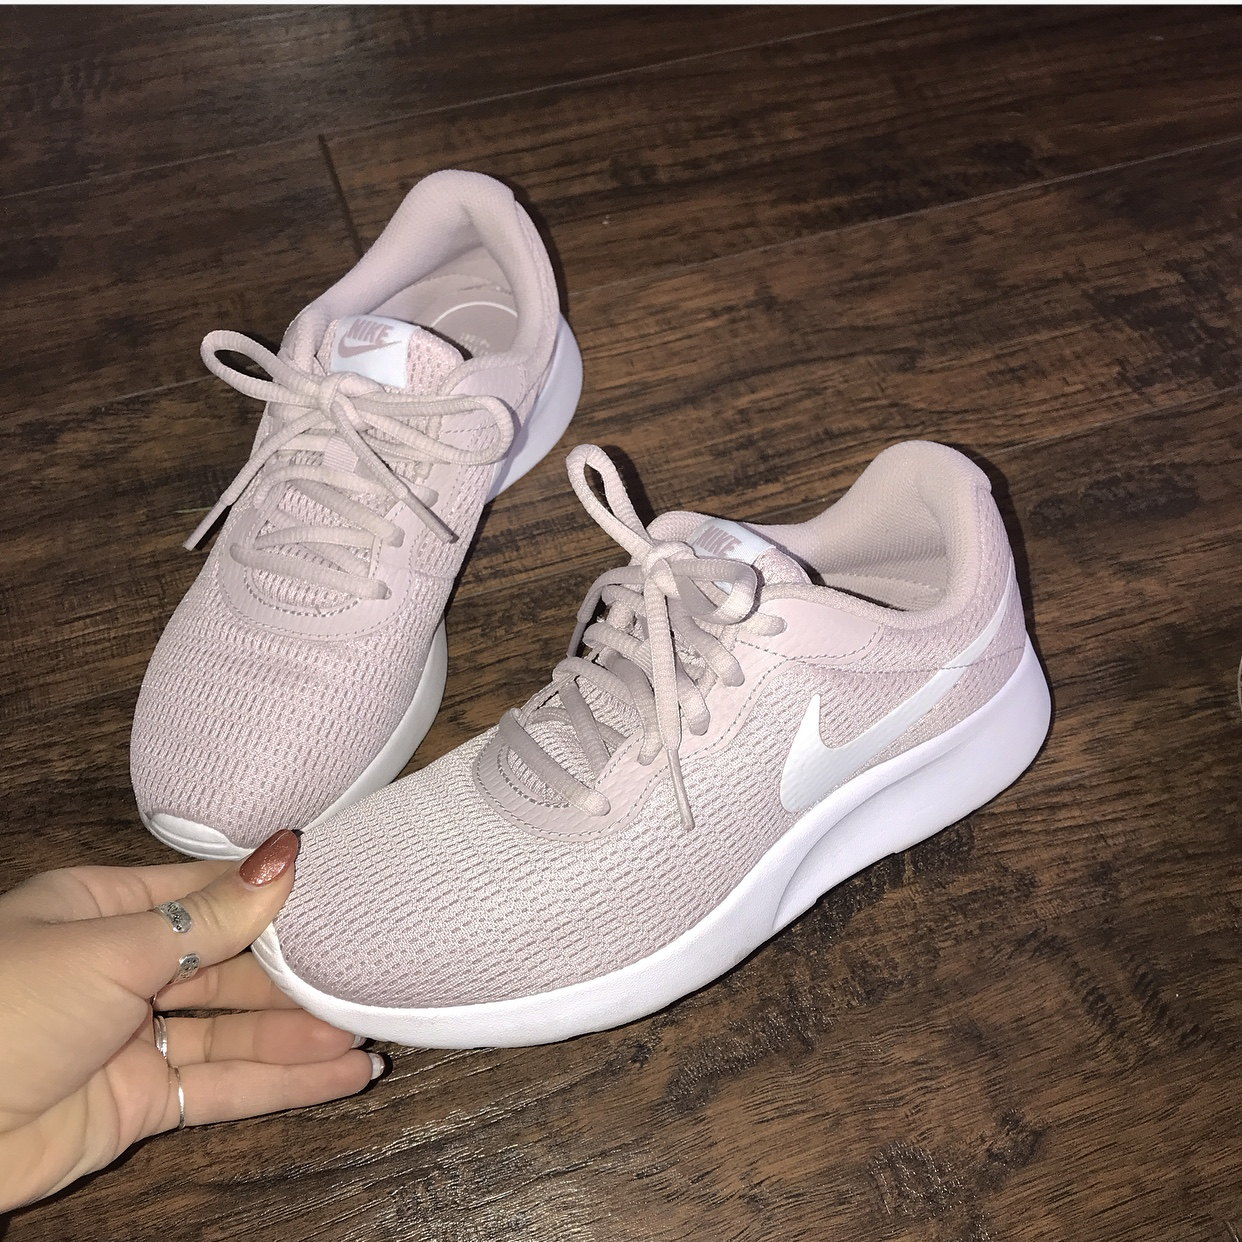 HOLD Nike running workout shoes, light